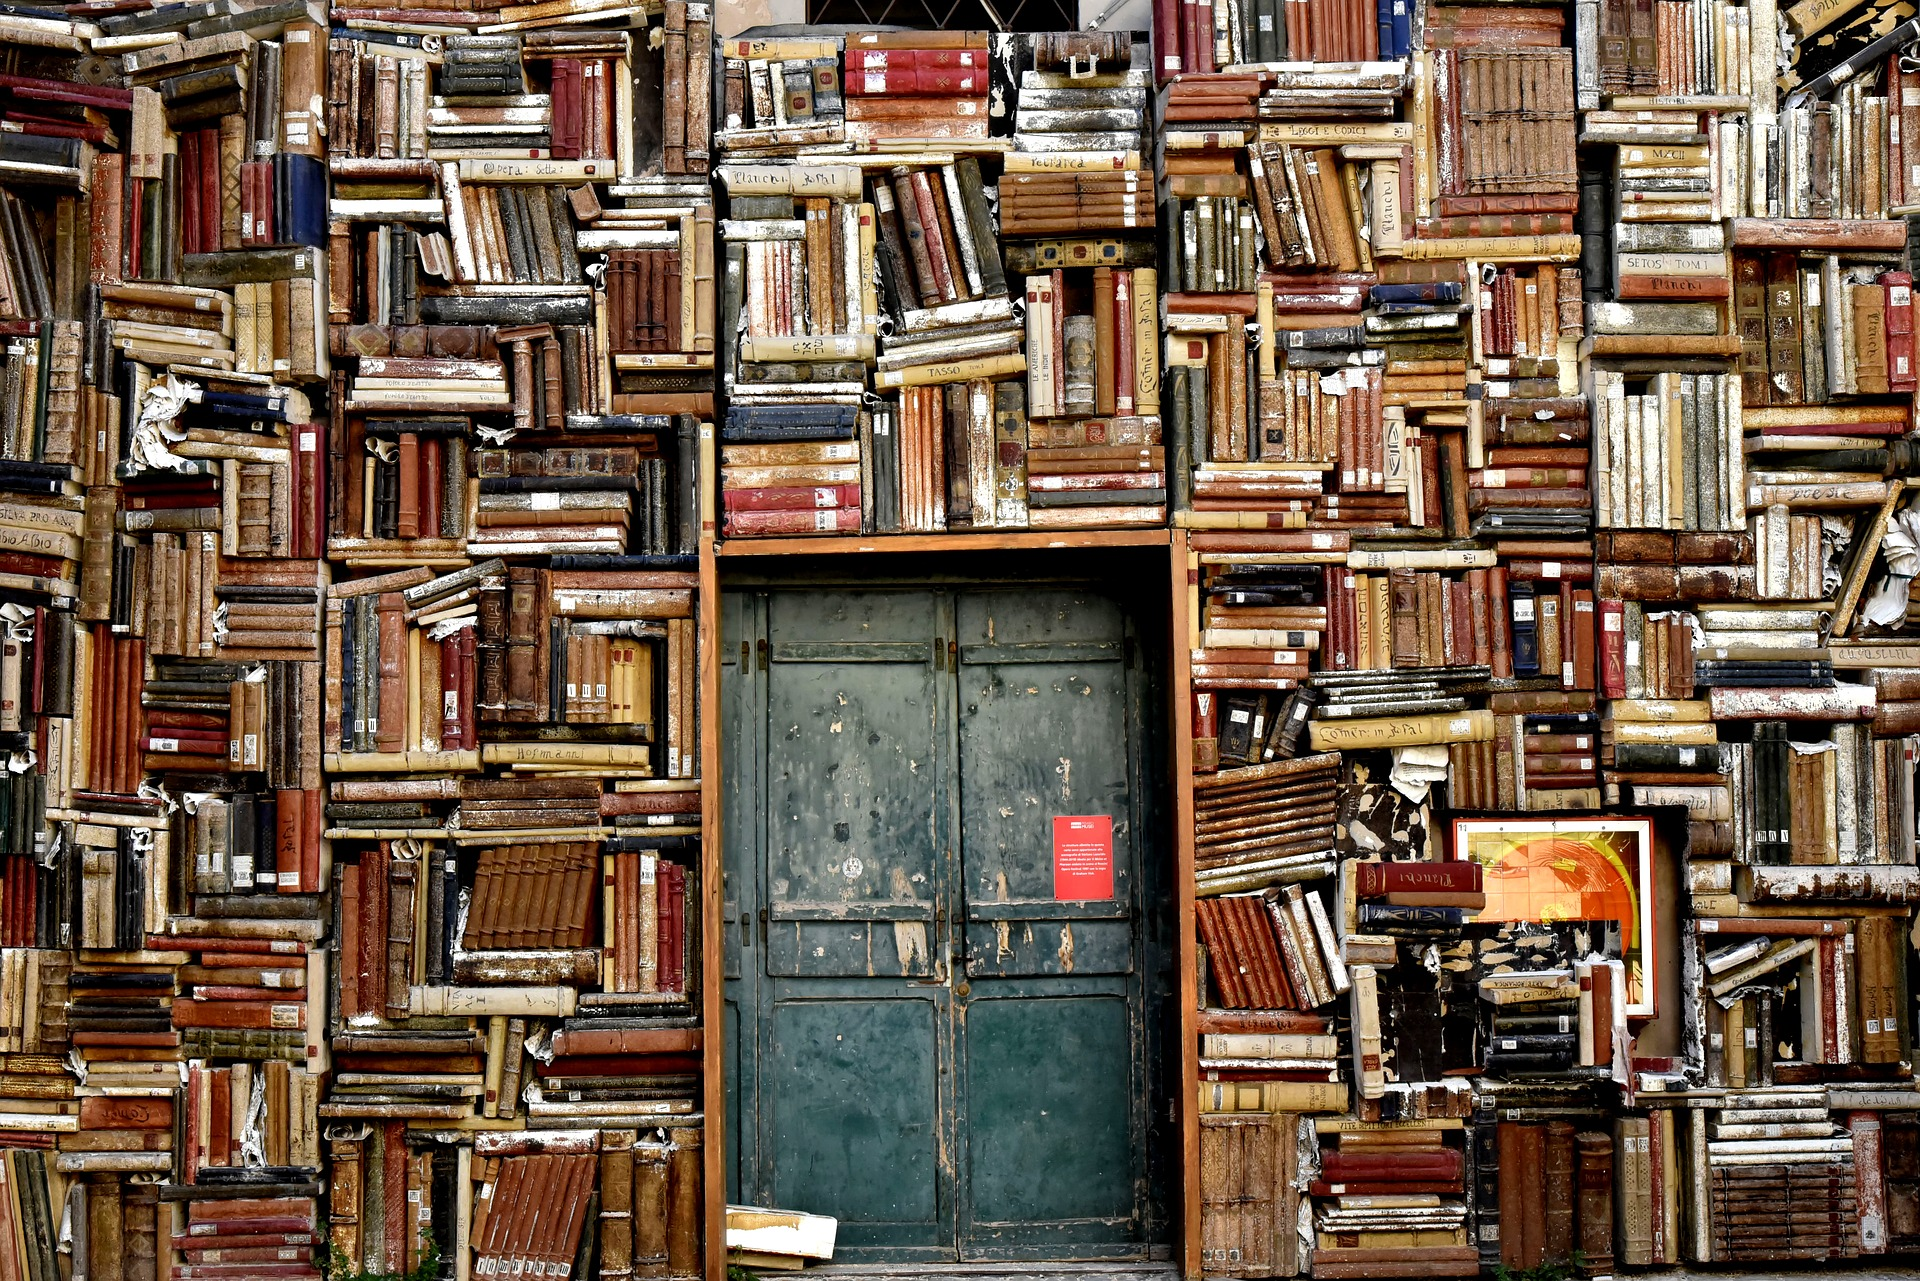 Books Arranged Haphazardly On An Entire Wall and a Green Door